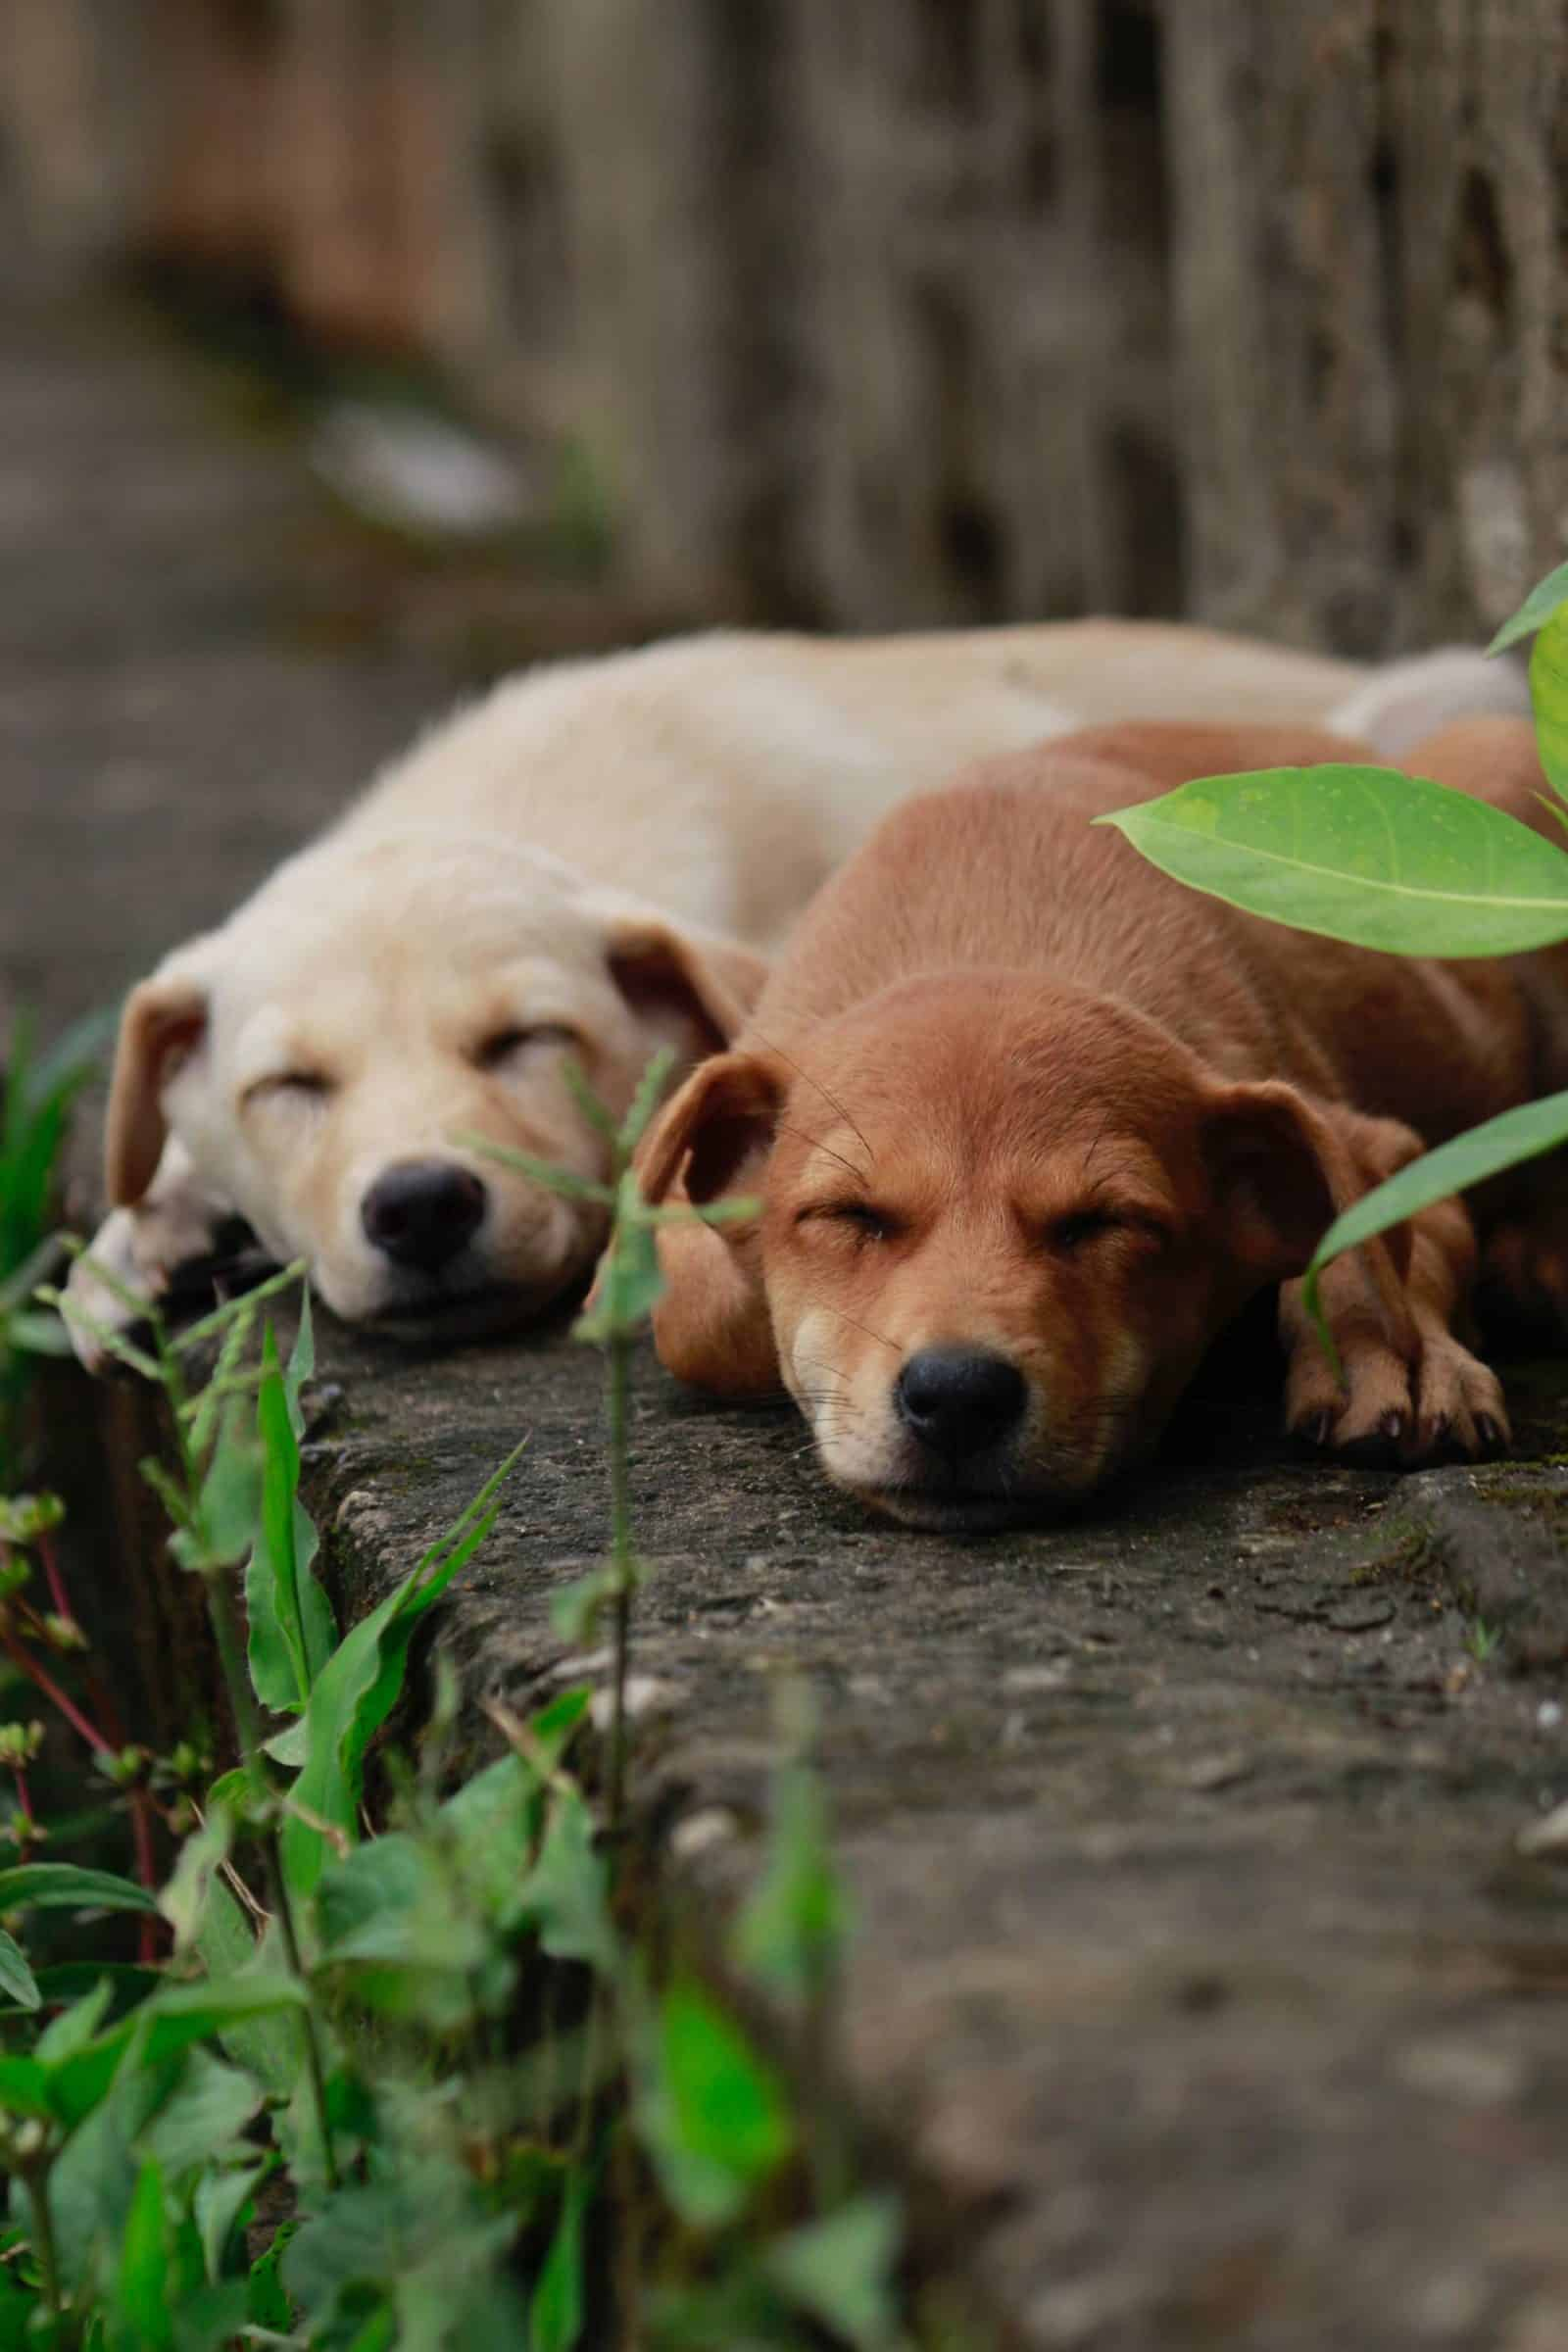 Plants That Pet Owners Should Avoid